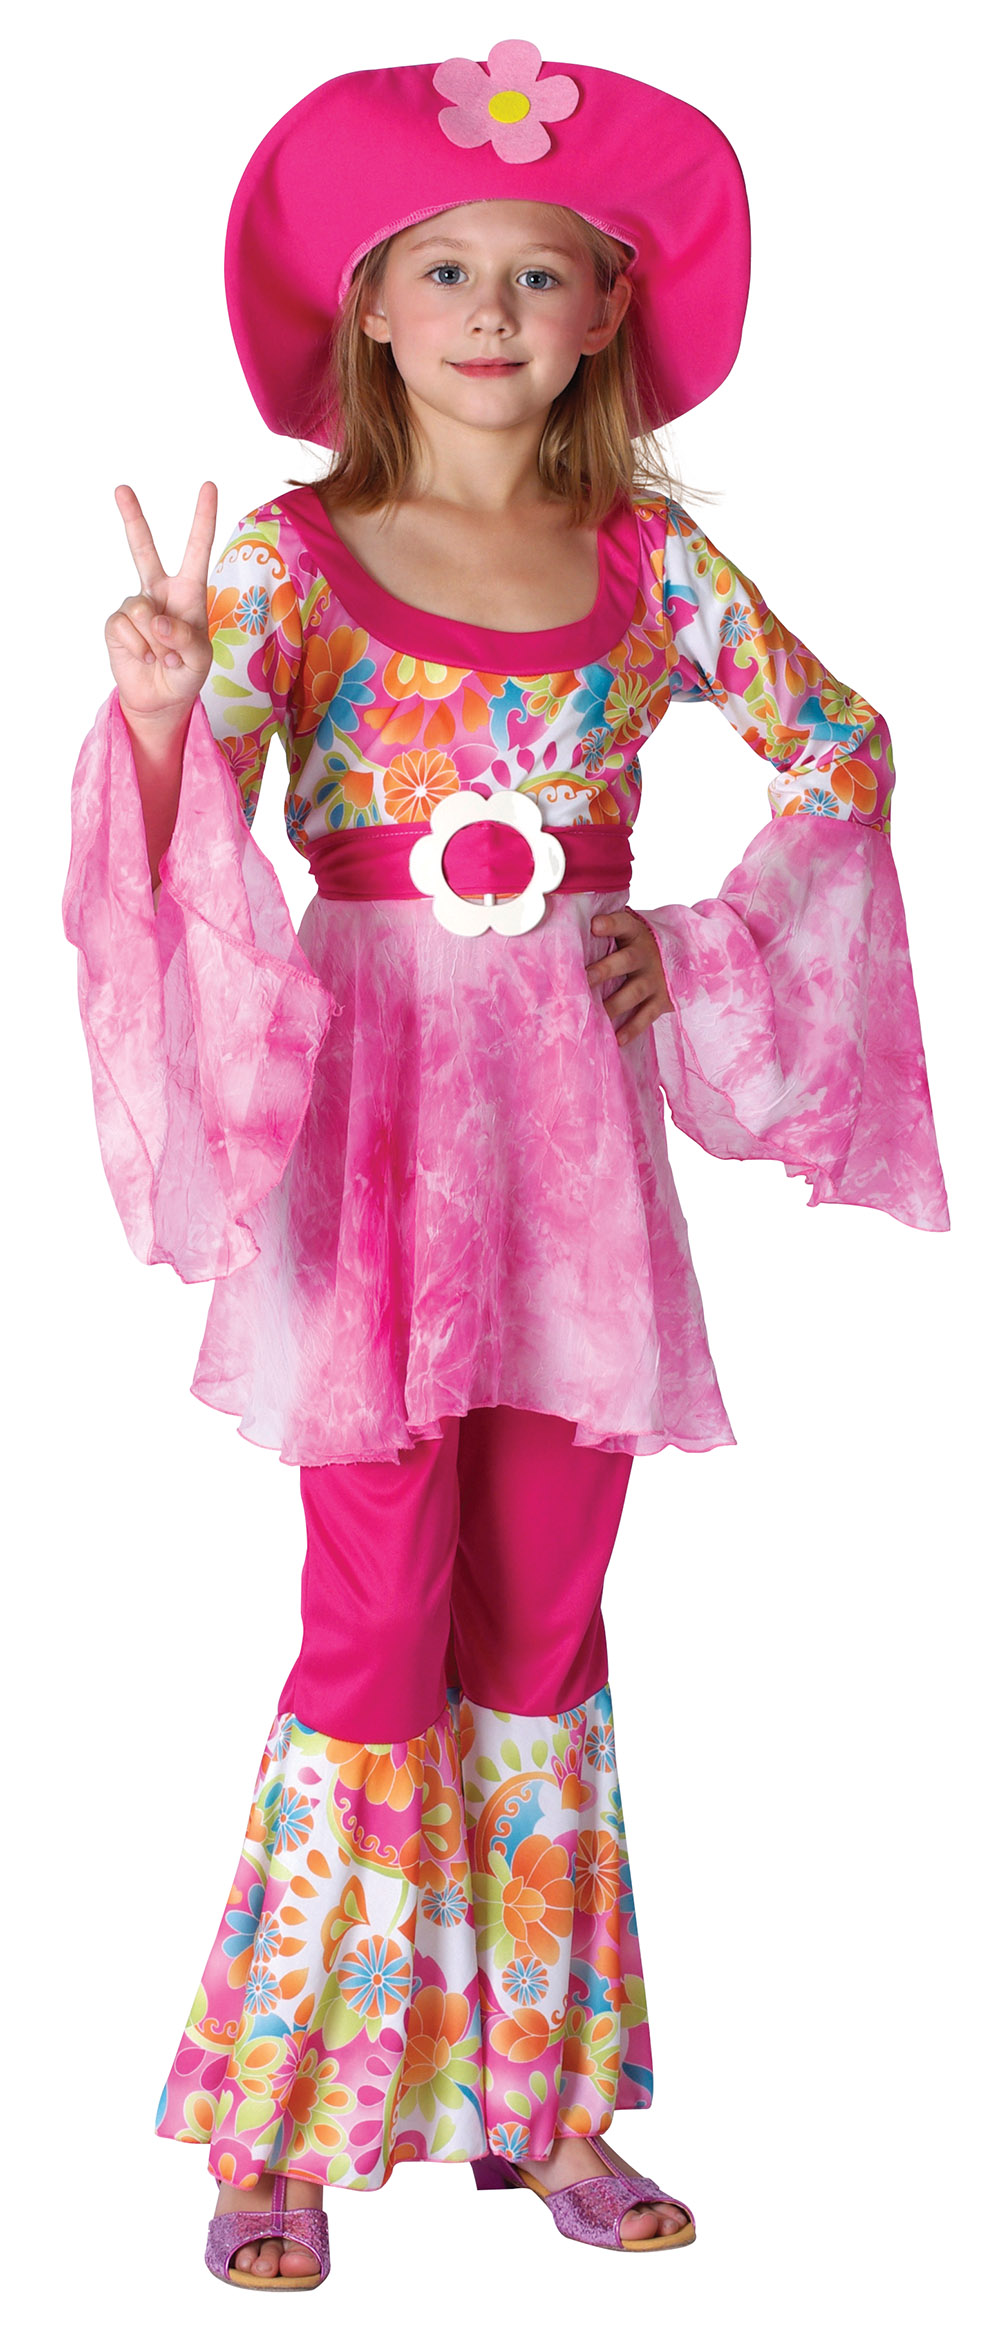 Girls Hippy Diva Costume Hippie 60s 70s Mod  sc 1 th 214 : diva costumes for kids  - Germanpascual.Com